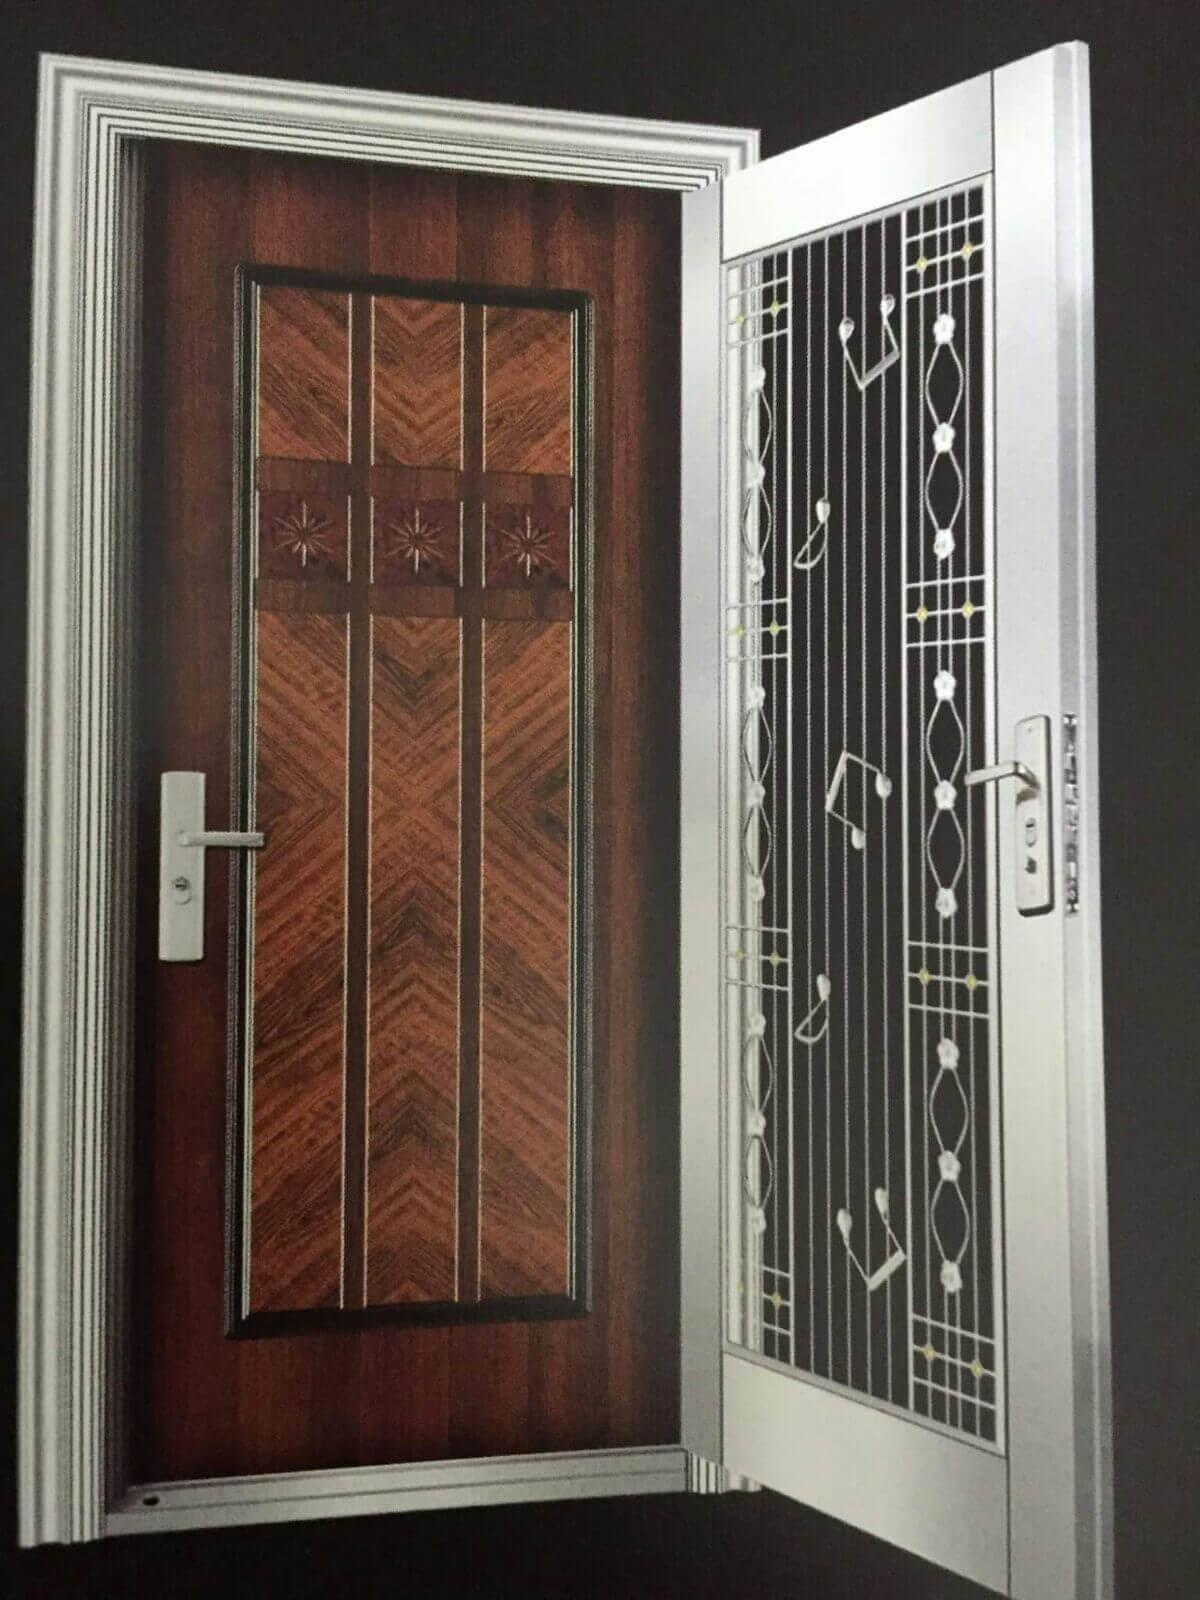 Designer Doors for Offices and Homes